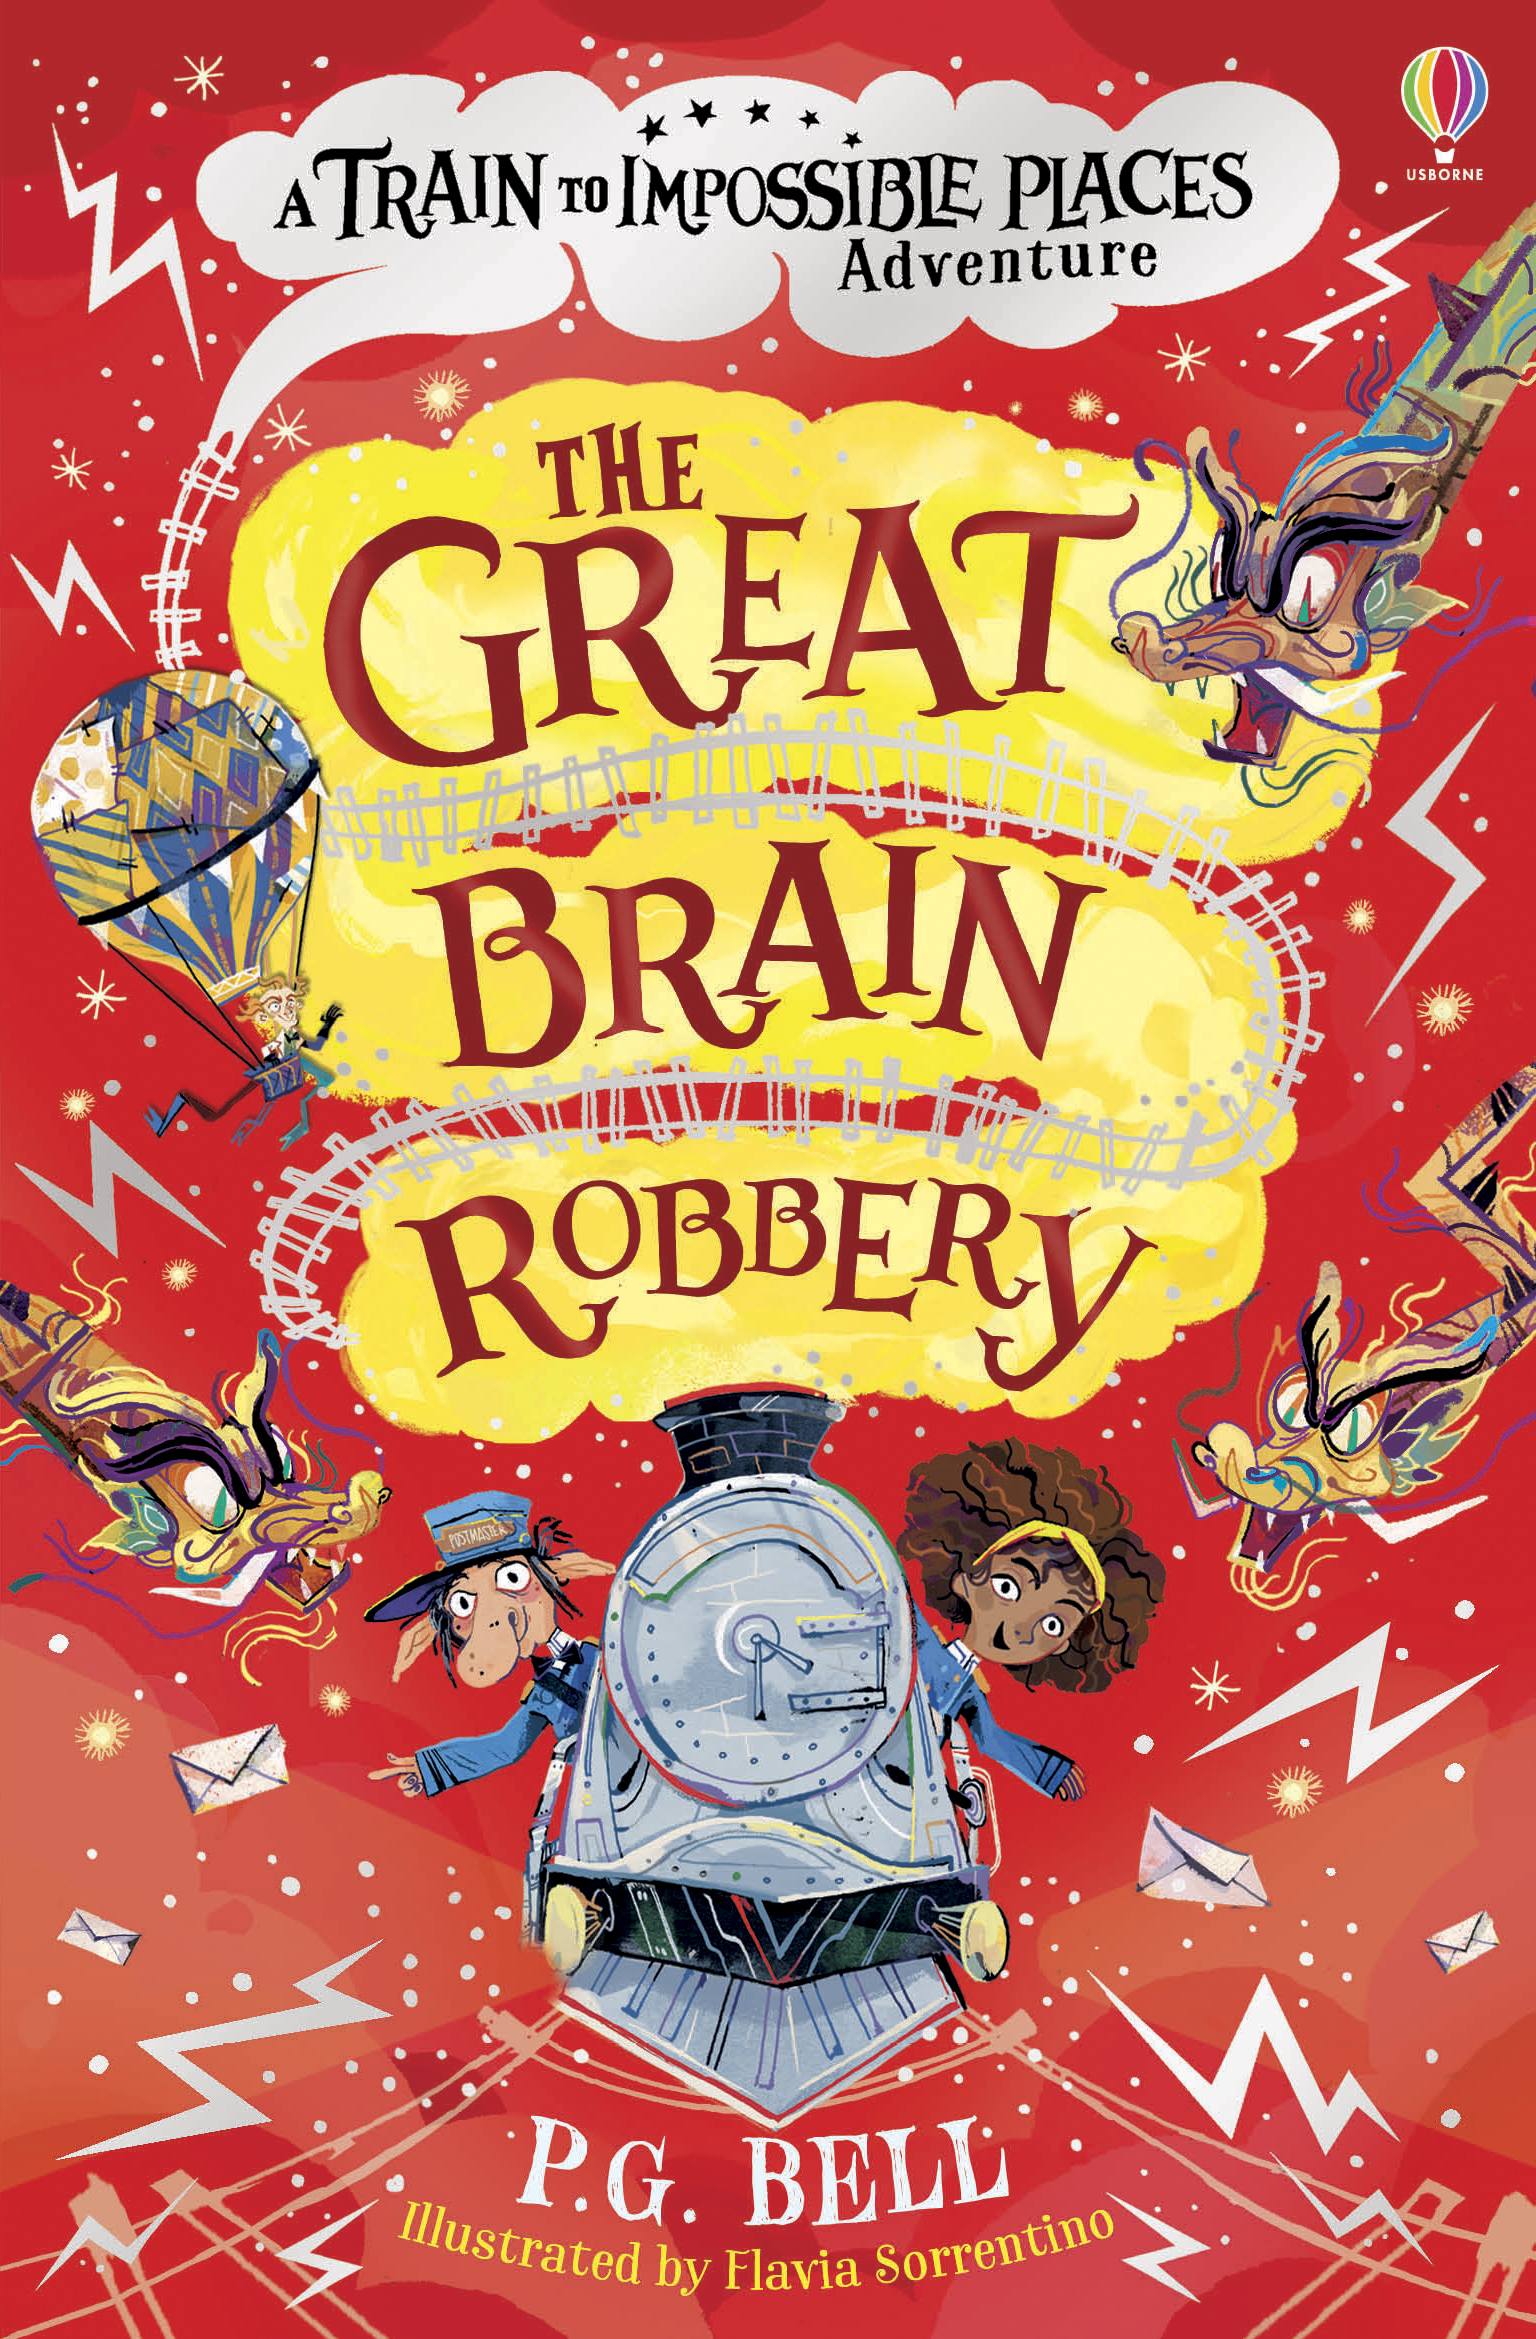 The Great Brain Robbery paperback cover